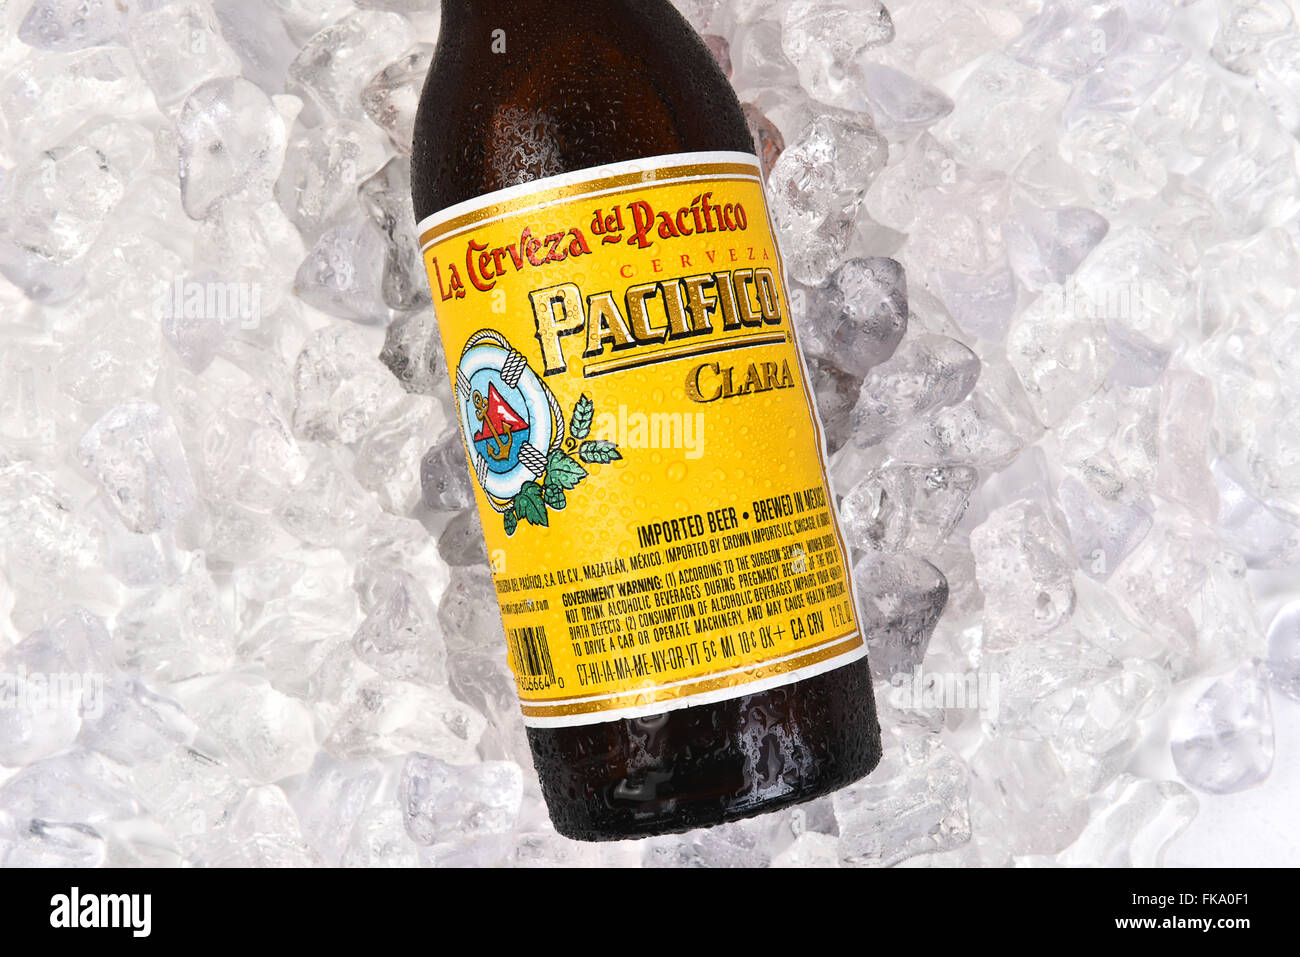 Cerveza Pacifico Clara bottle on a bed of ice. Stock Photo